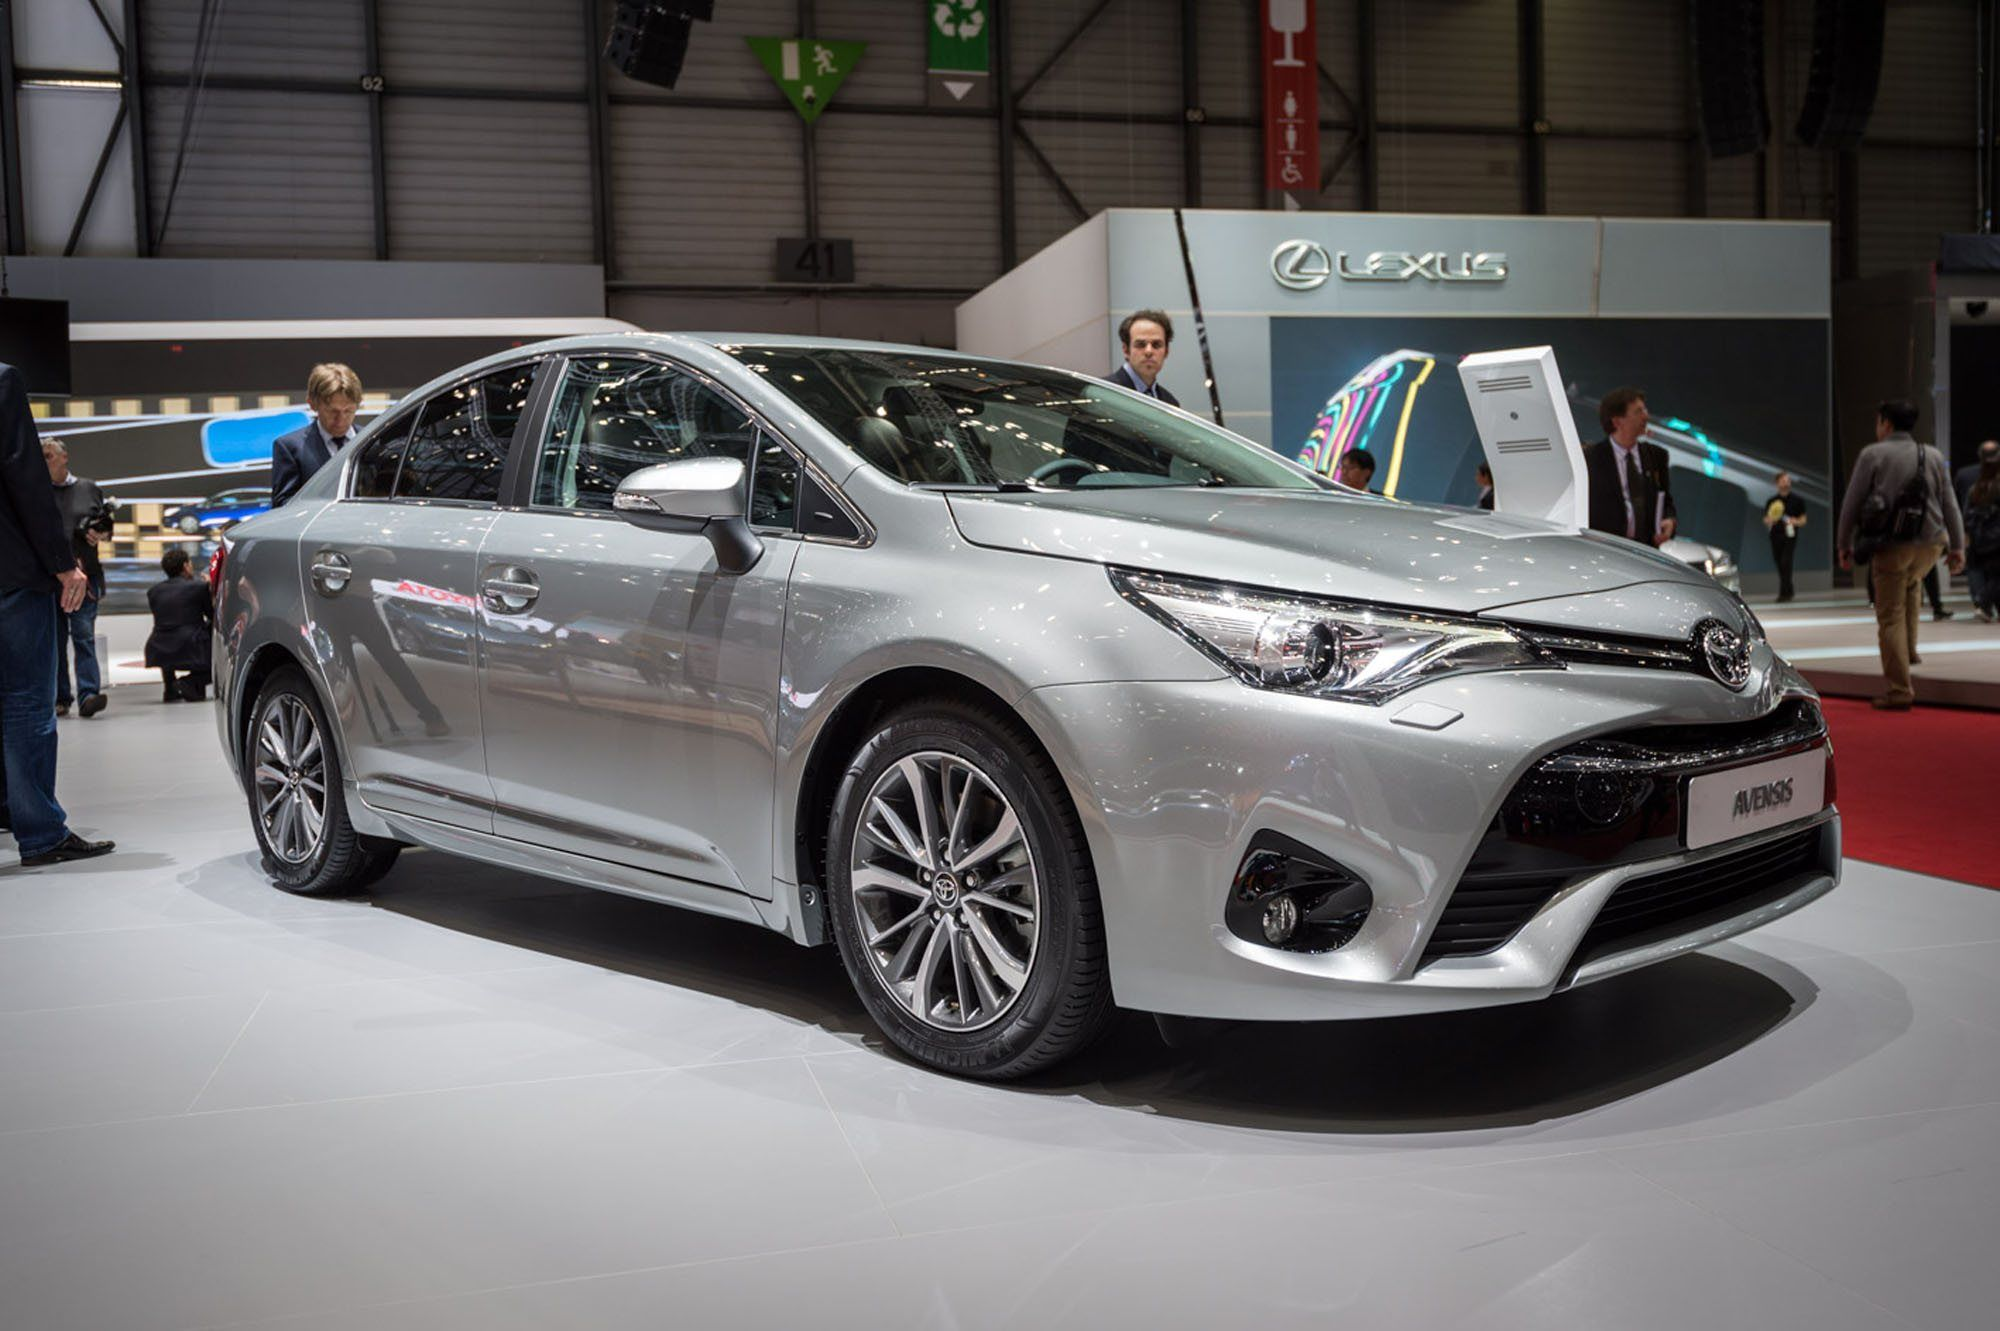 2020 New Toyota Avensis Spy Shots Reviews